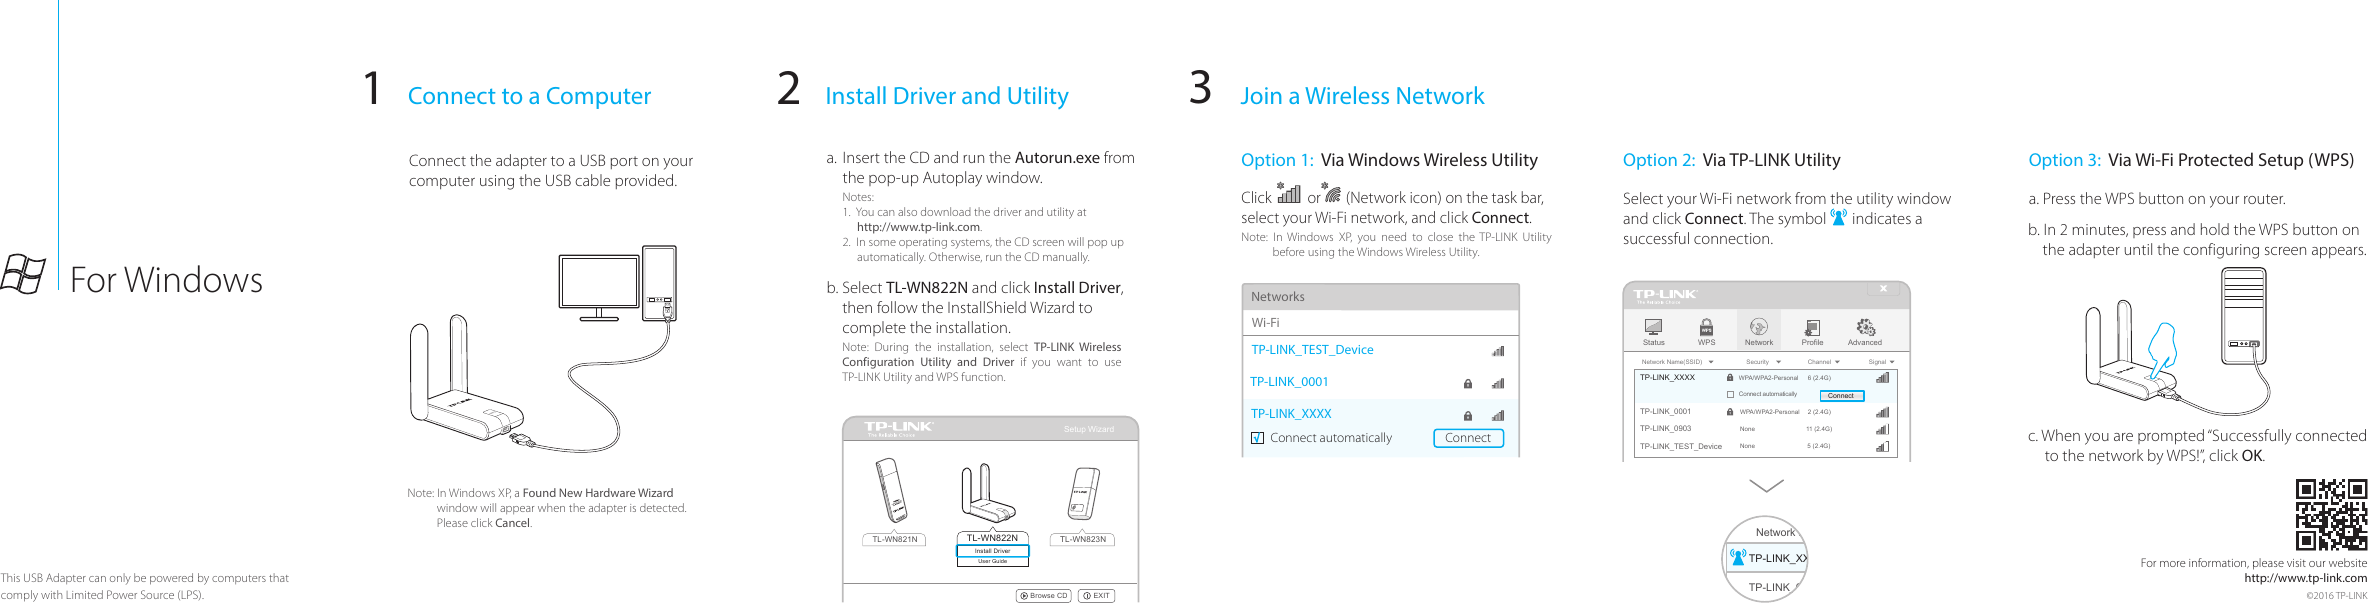 download tp-link wireless configuration utility